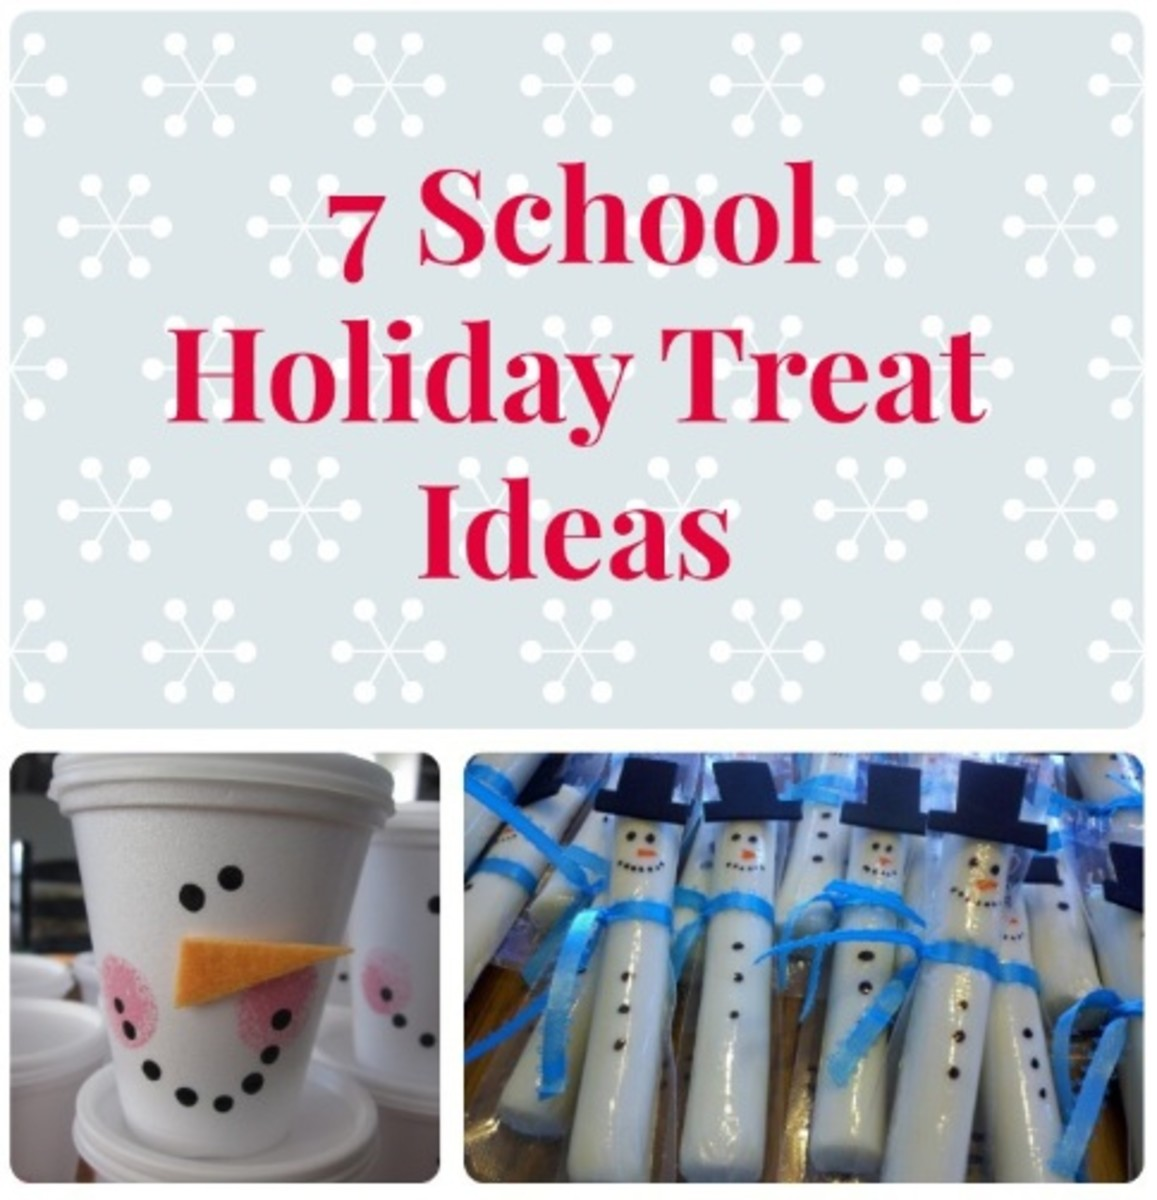 School Holiday Treat Ideas Featured